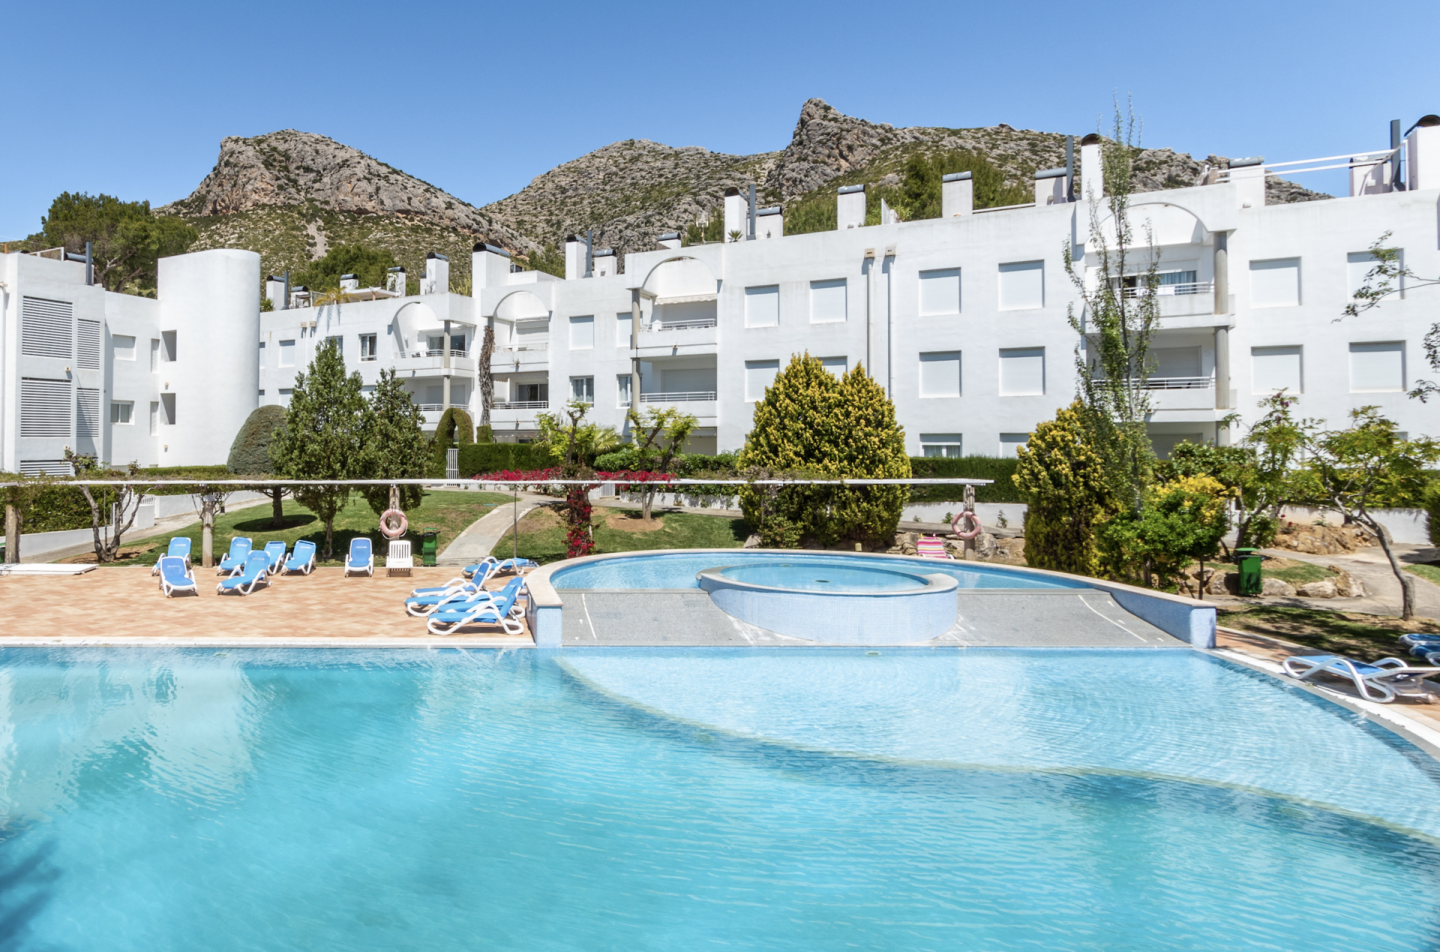 3 Bed Apartment for sale in PUERTO POLLENSA 0